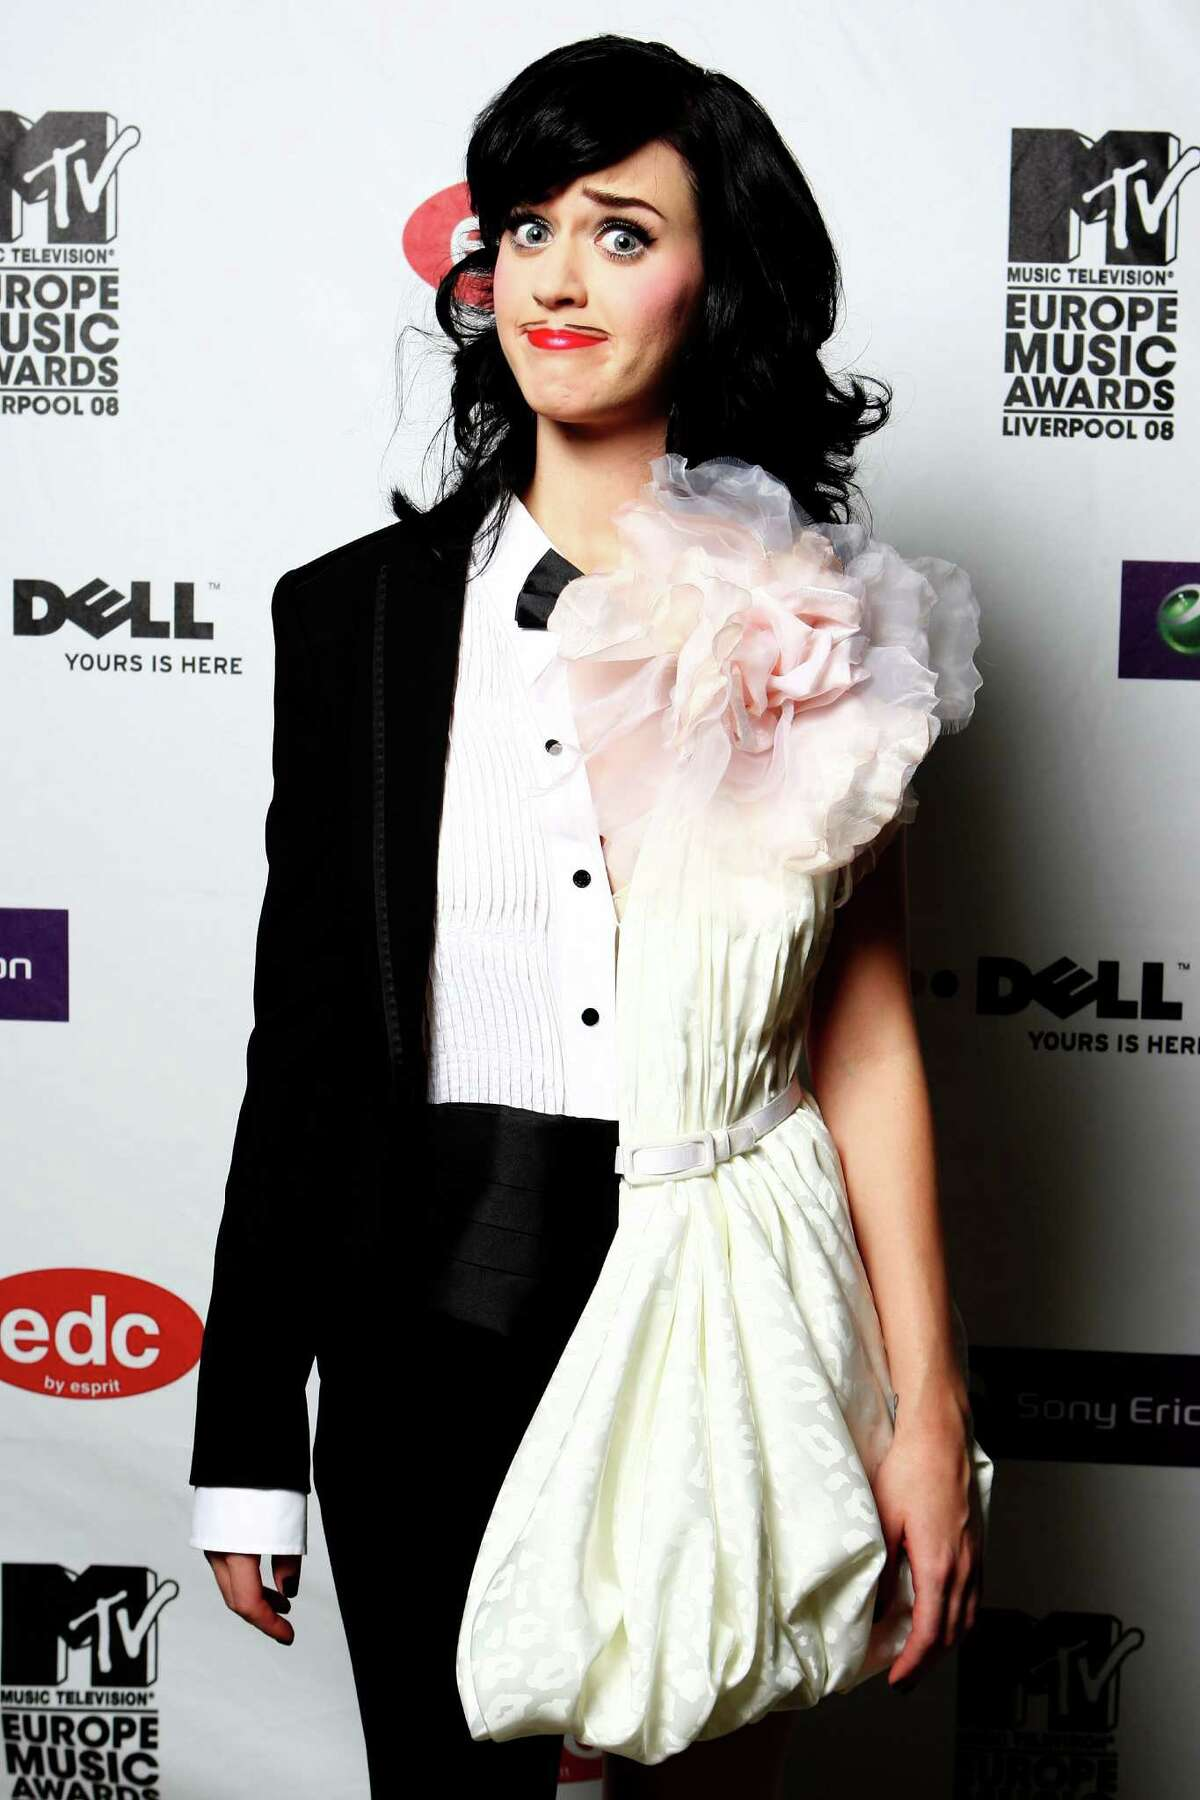 Katy Perry looks she's ready to give up and marry herself.